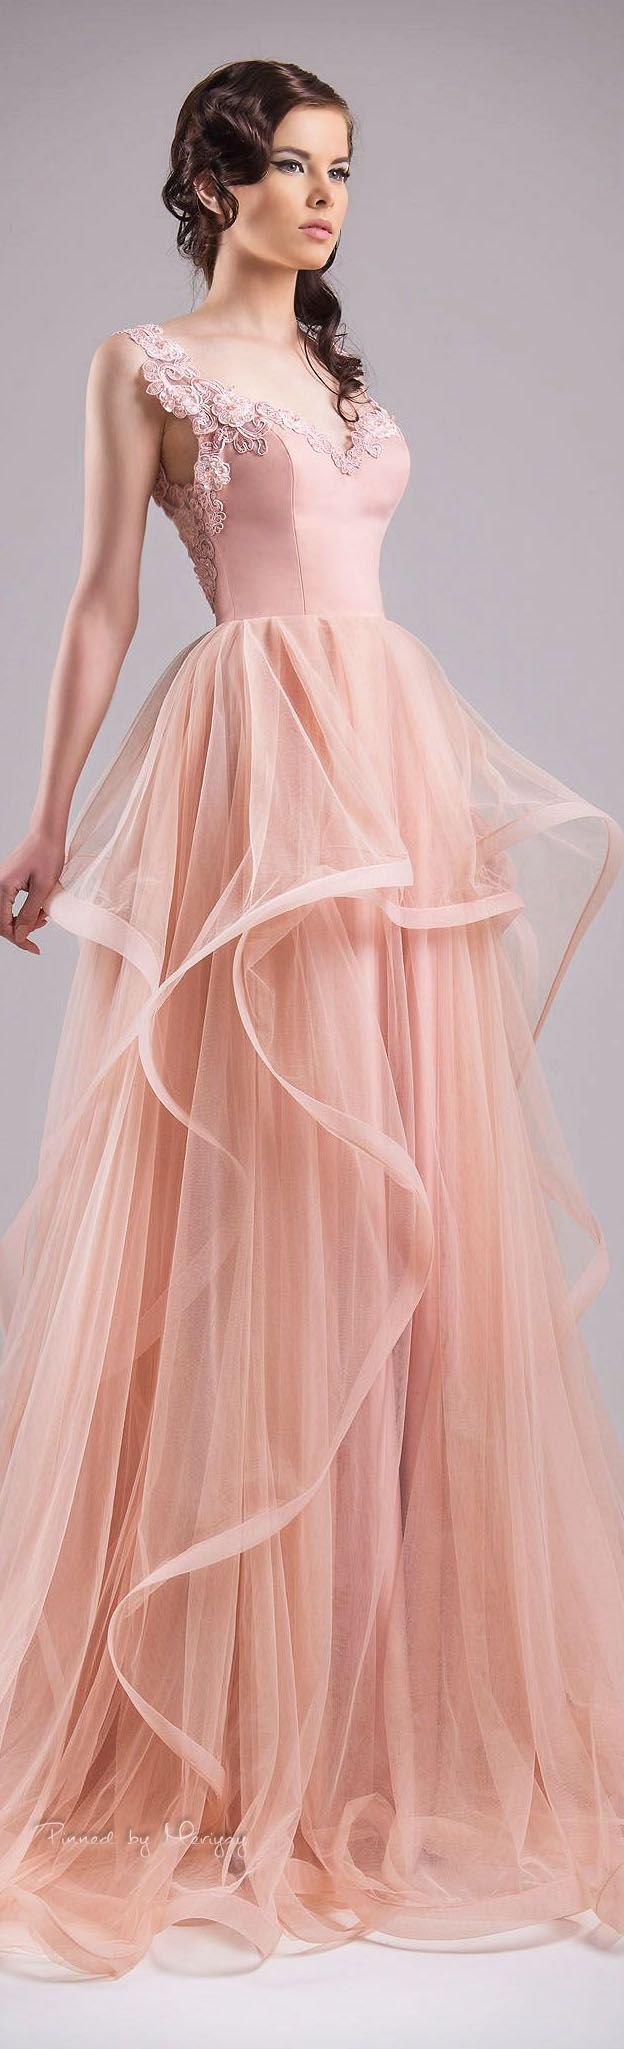 Blush Pink Prom DressesBall Gown DressLace DressSimple DressTulle Evening GownsCheap Party DressElegant Dresses